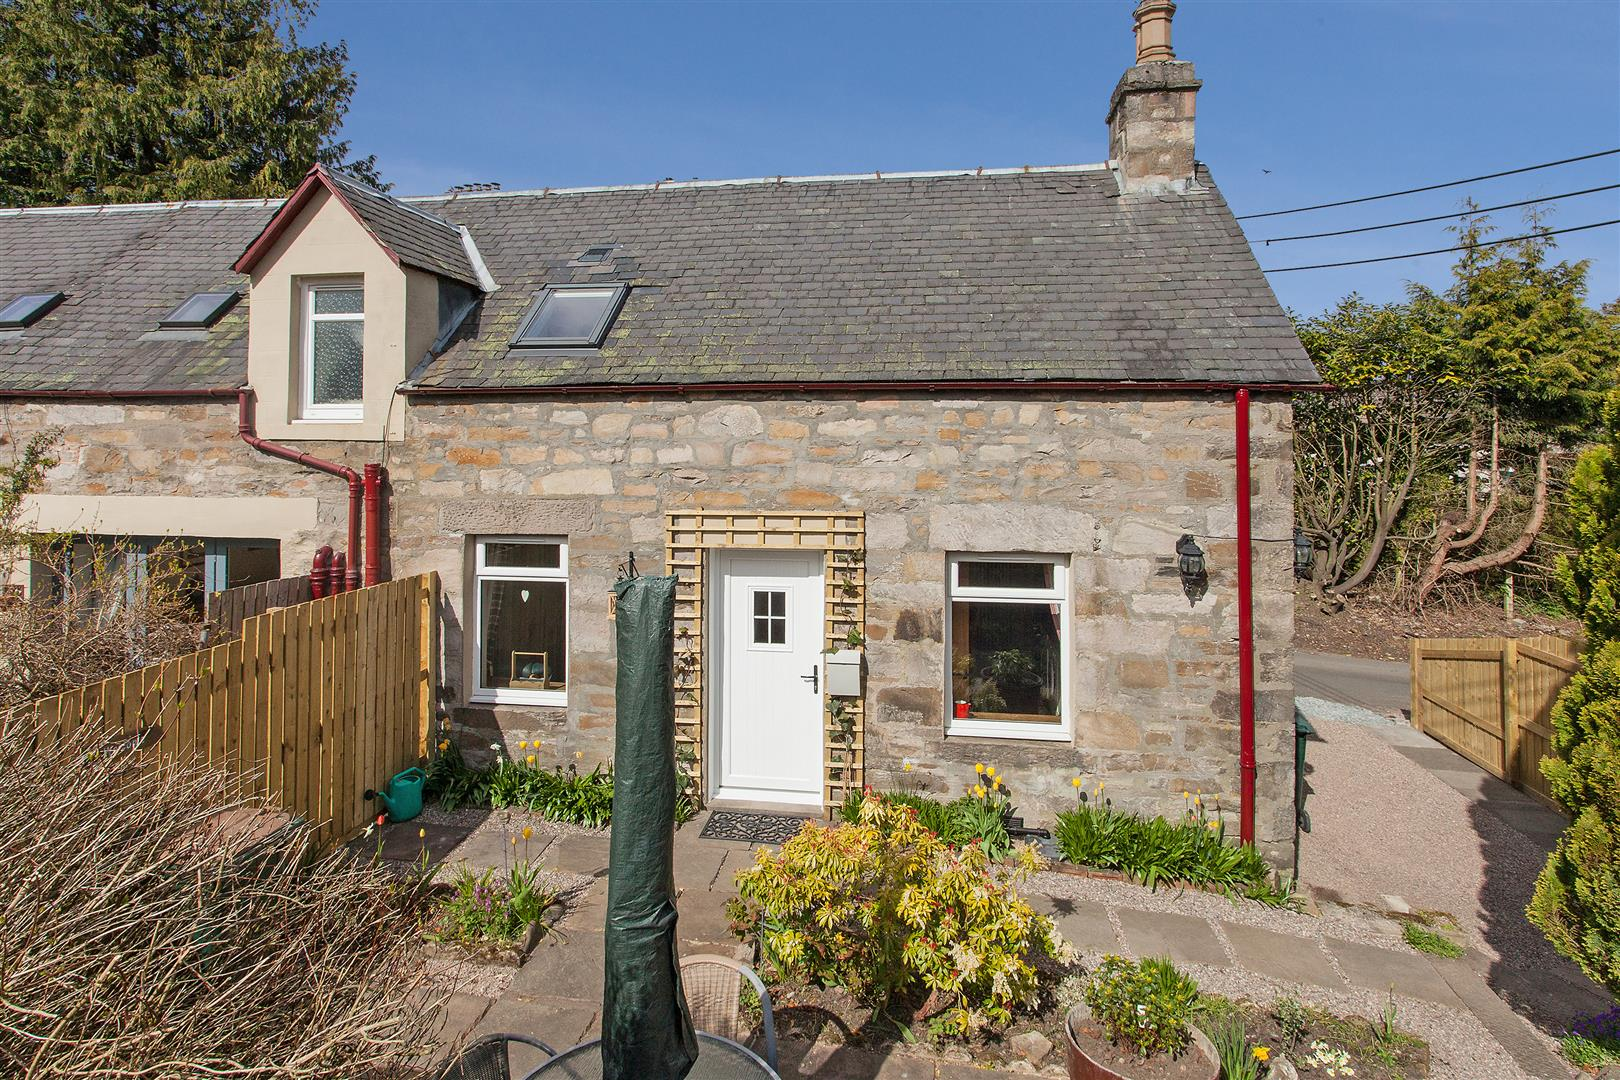 Bruach Garden Cottage, Bruach Lane, Pitlochry, Perthshire, PH16 5DG, UK